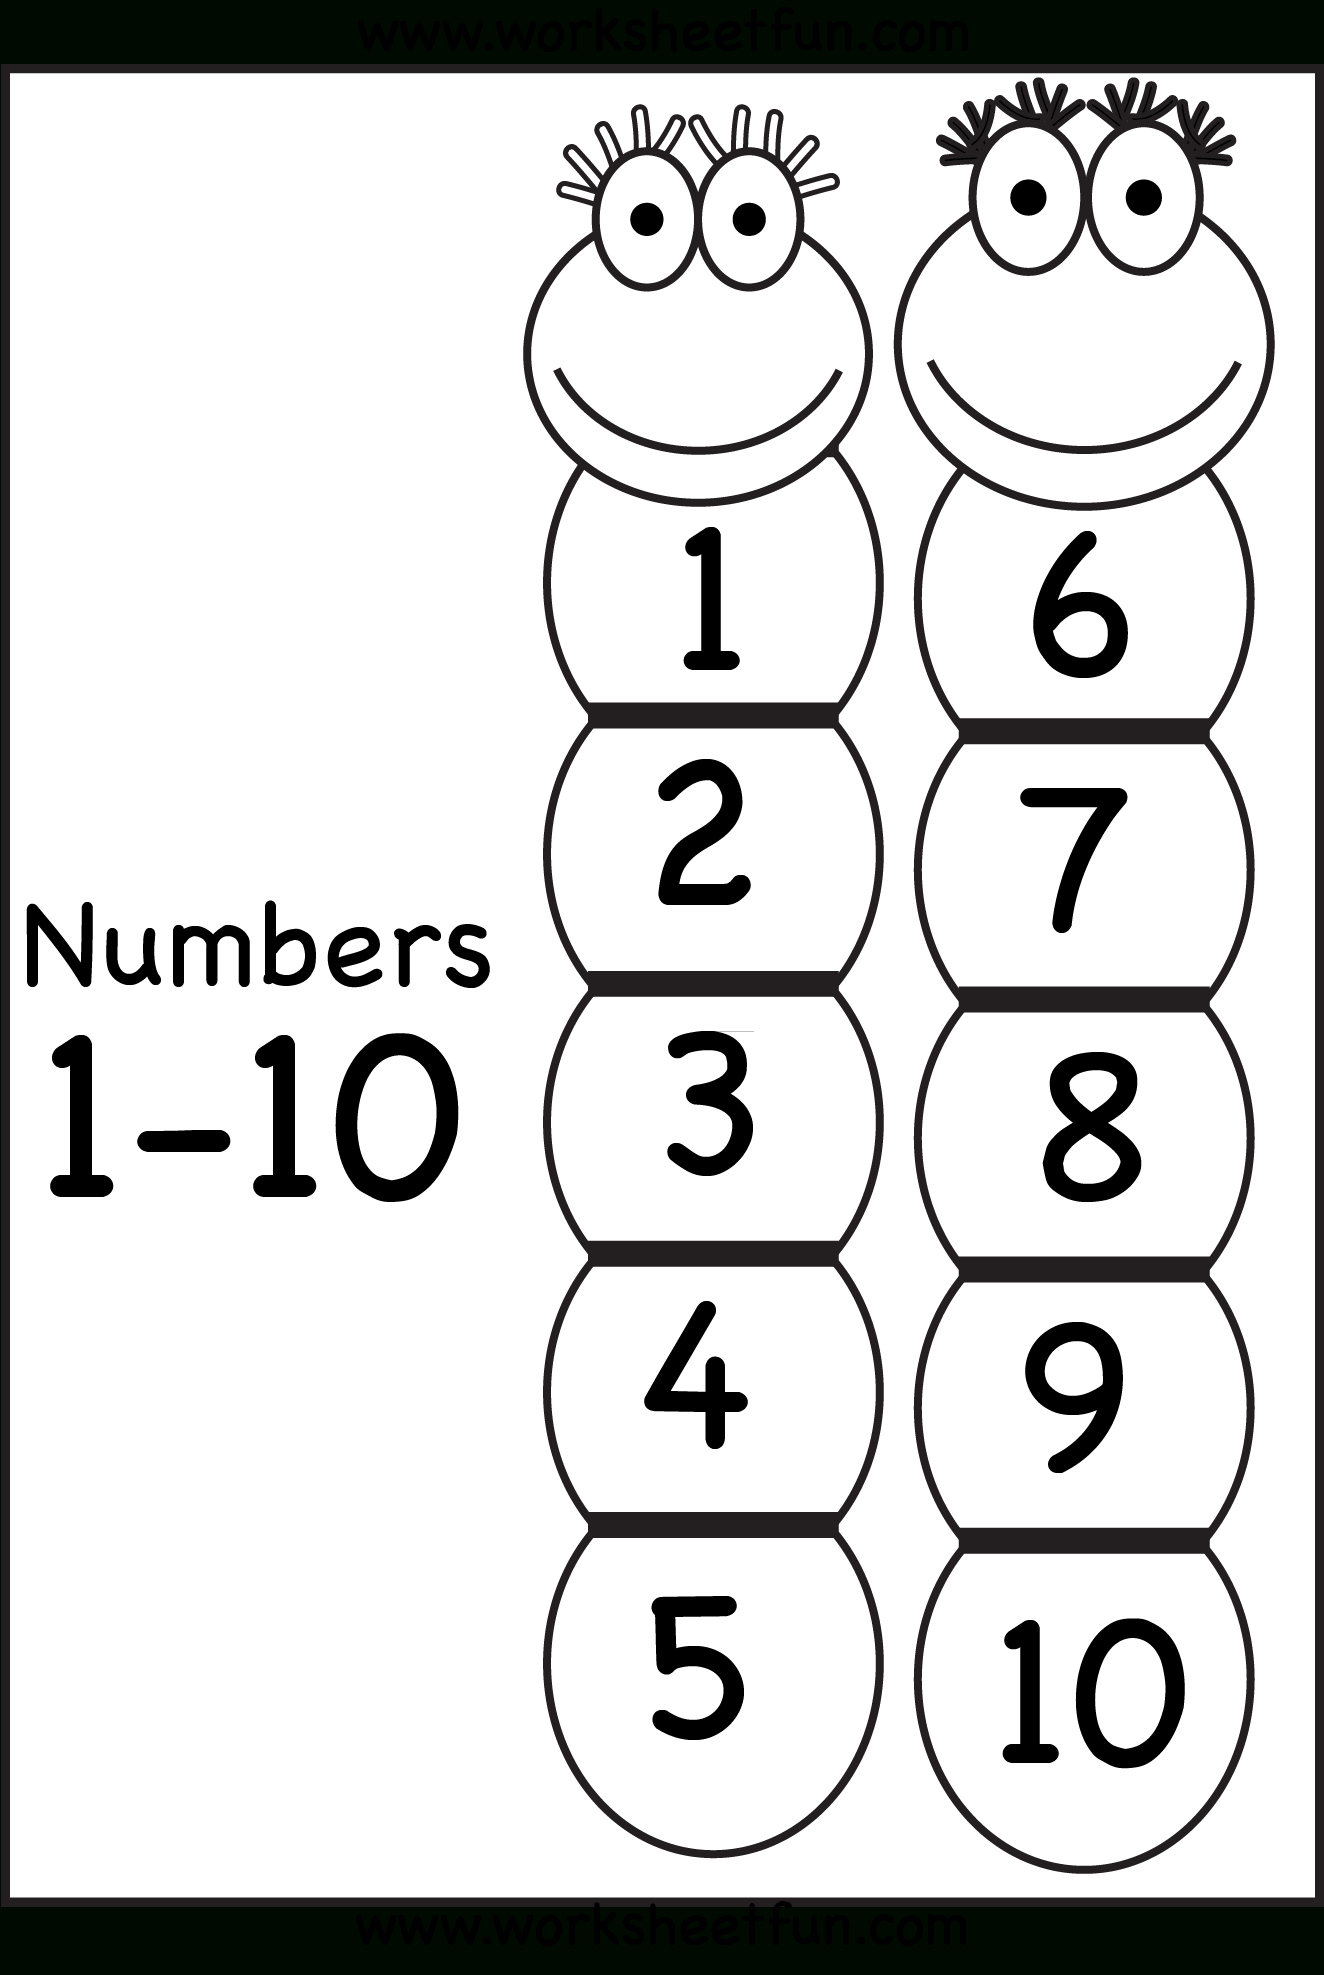 Number Chart 1-10 | Printable Worksheets | Number Chart, Worksheets - Free Printable Numbers 1 10